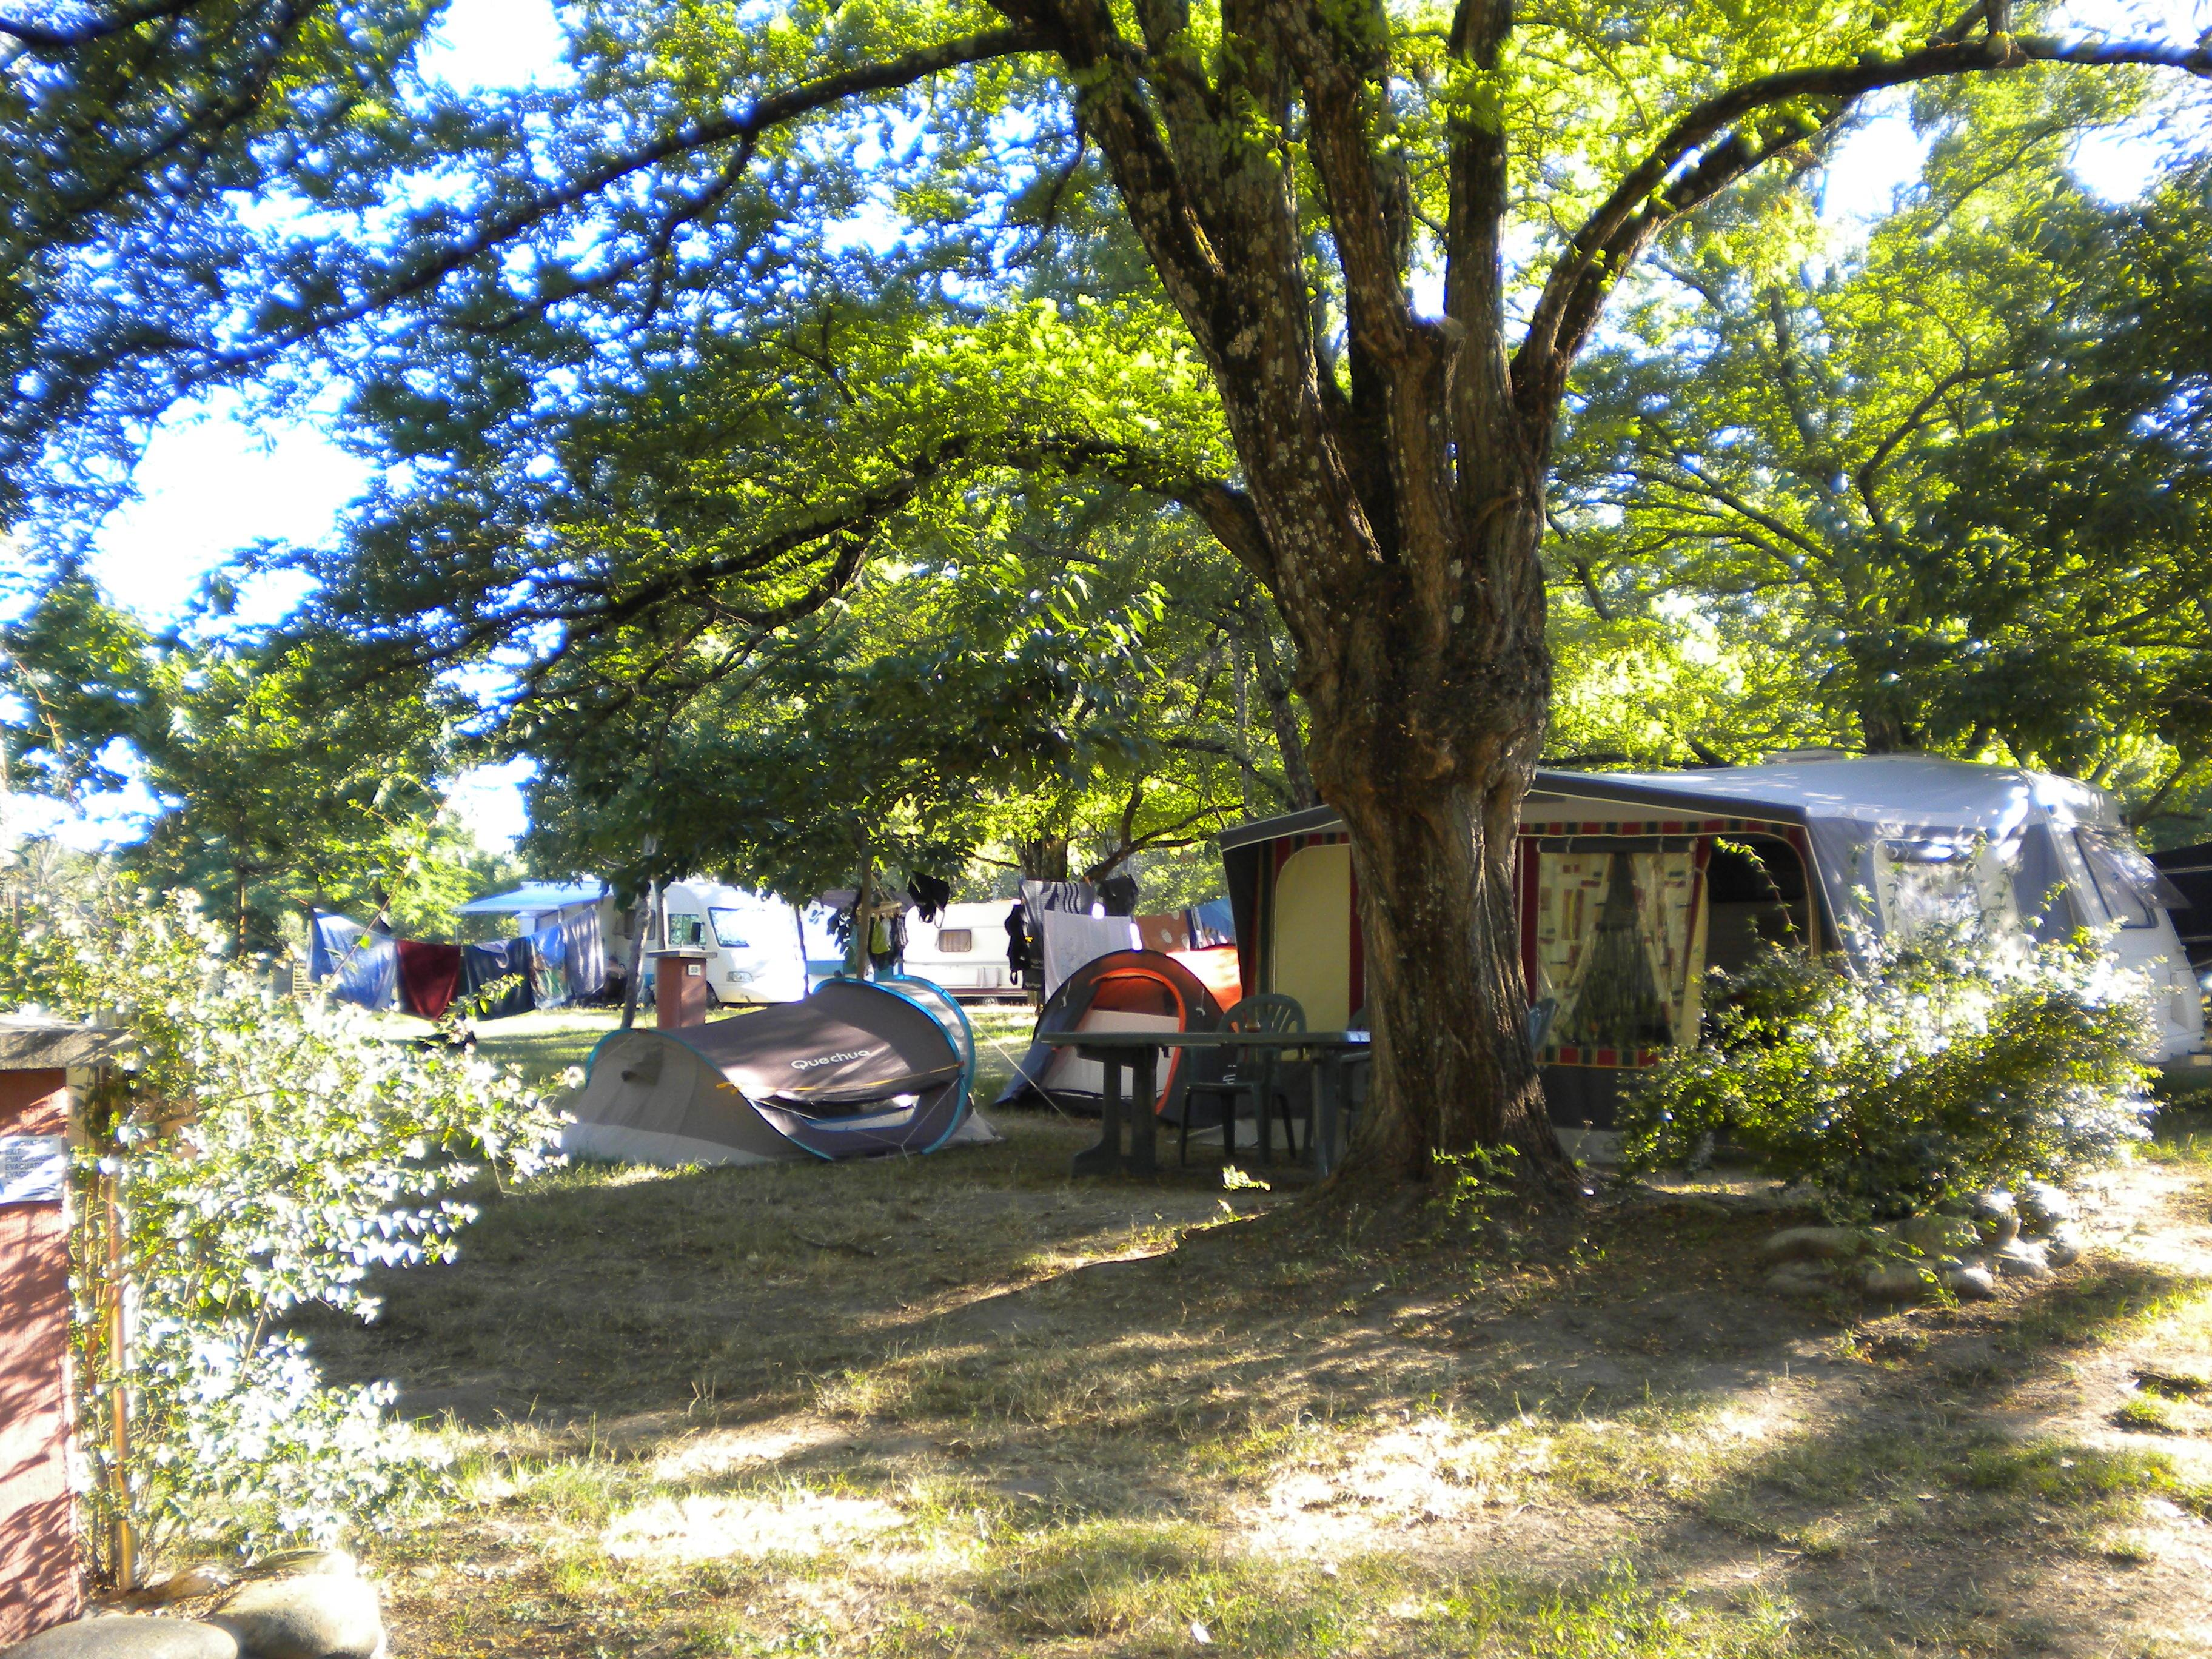 Pitch - Pitches  From 80 To 100 M² - Camping les Peupliers